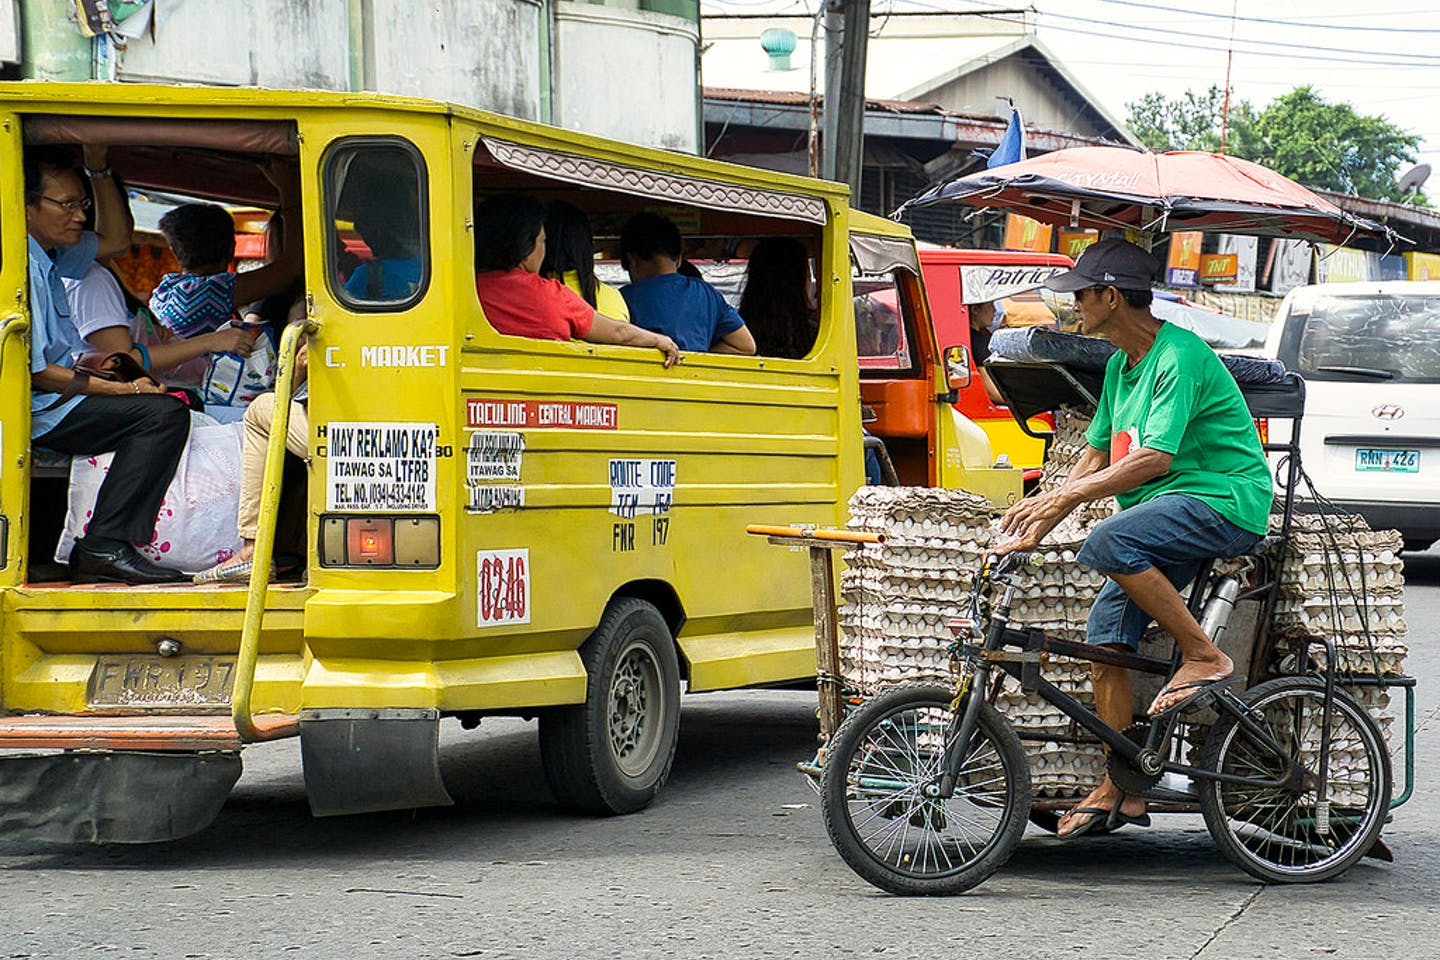 A man sells eggs in a tricycle in Bacolod City, the Philippines